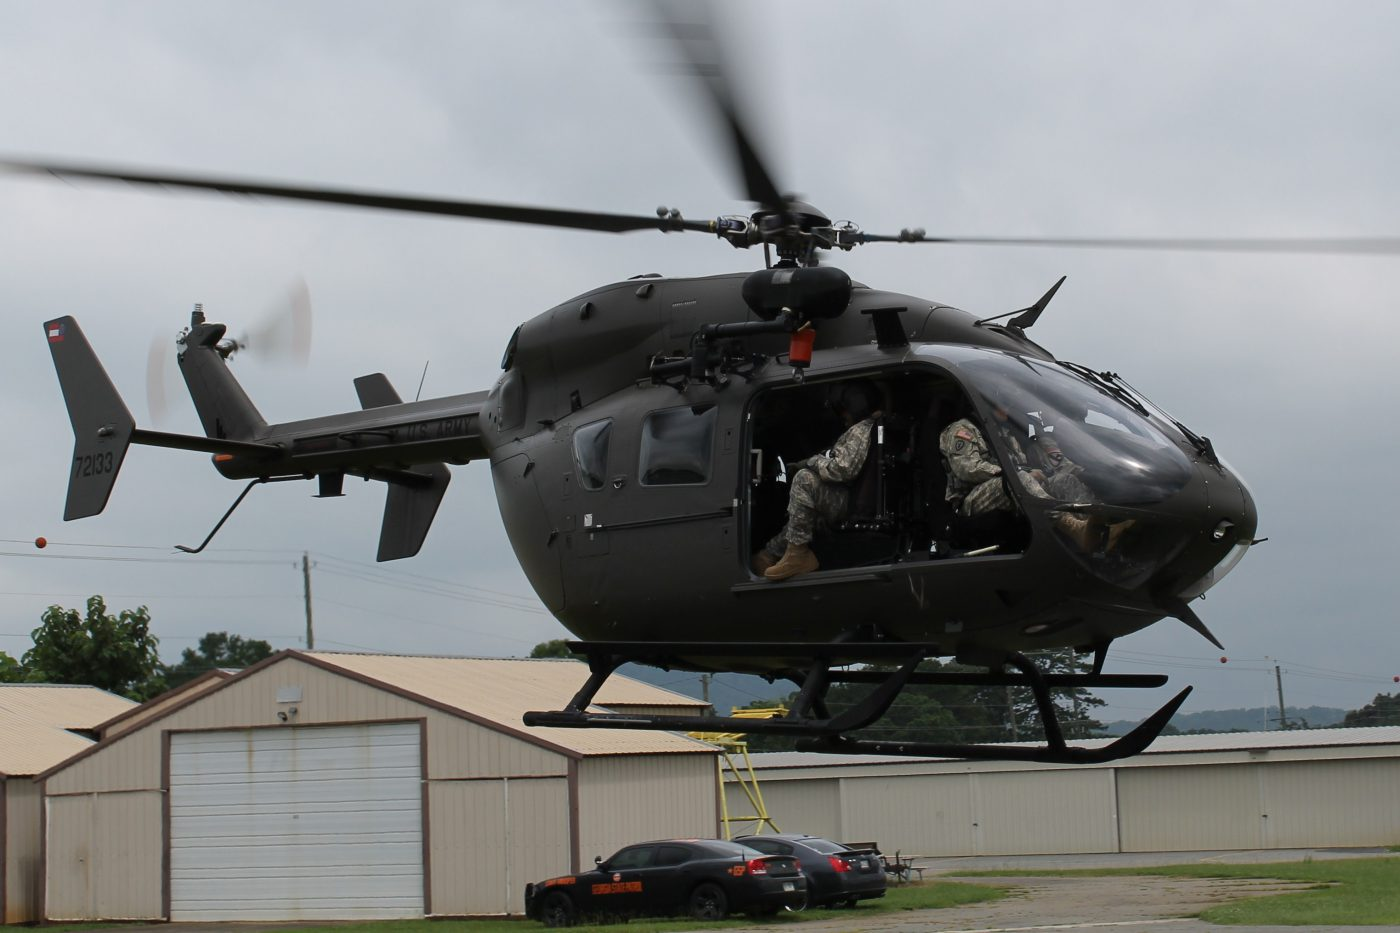 National Guard helicopter departing